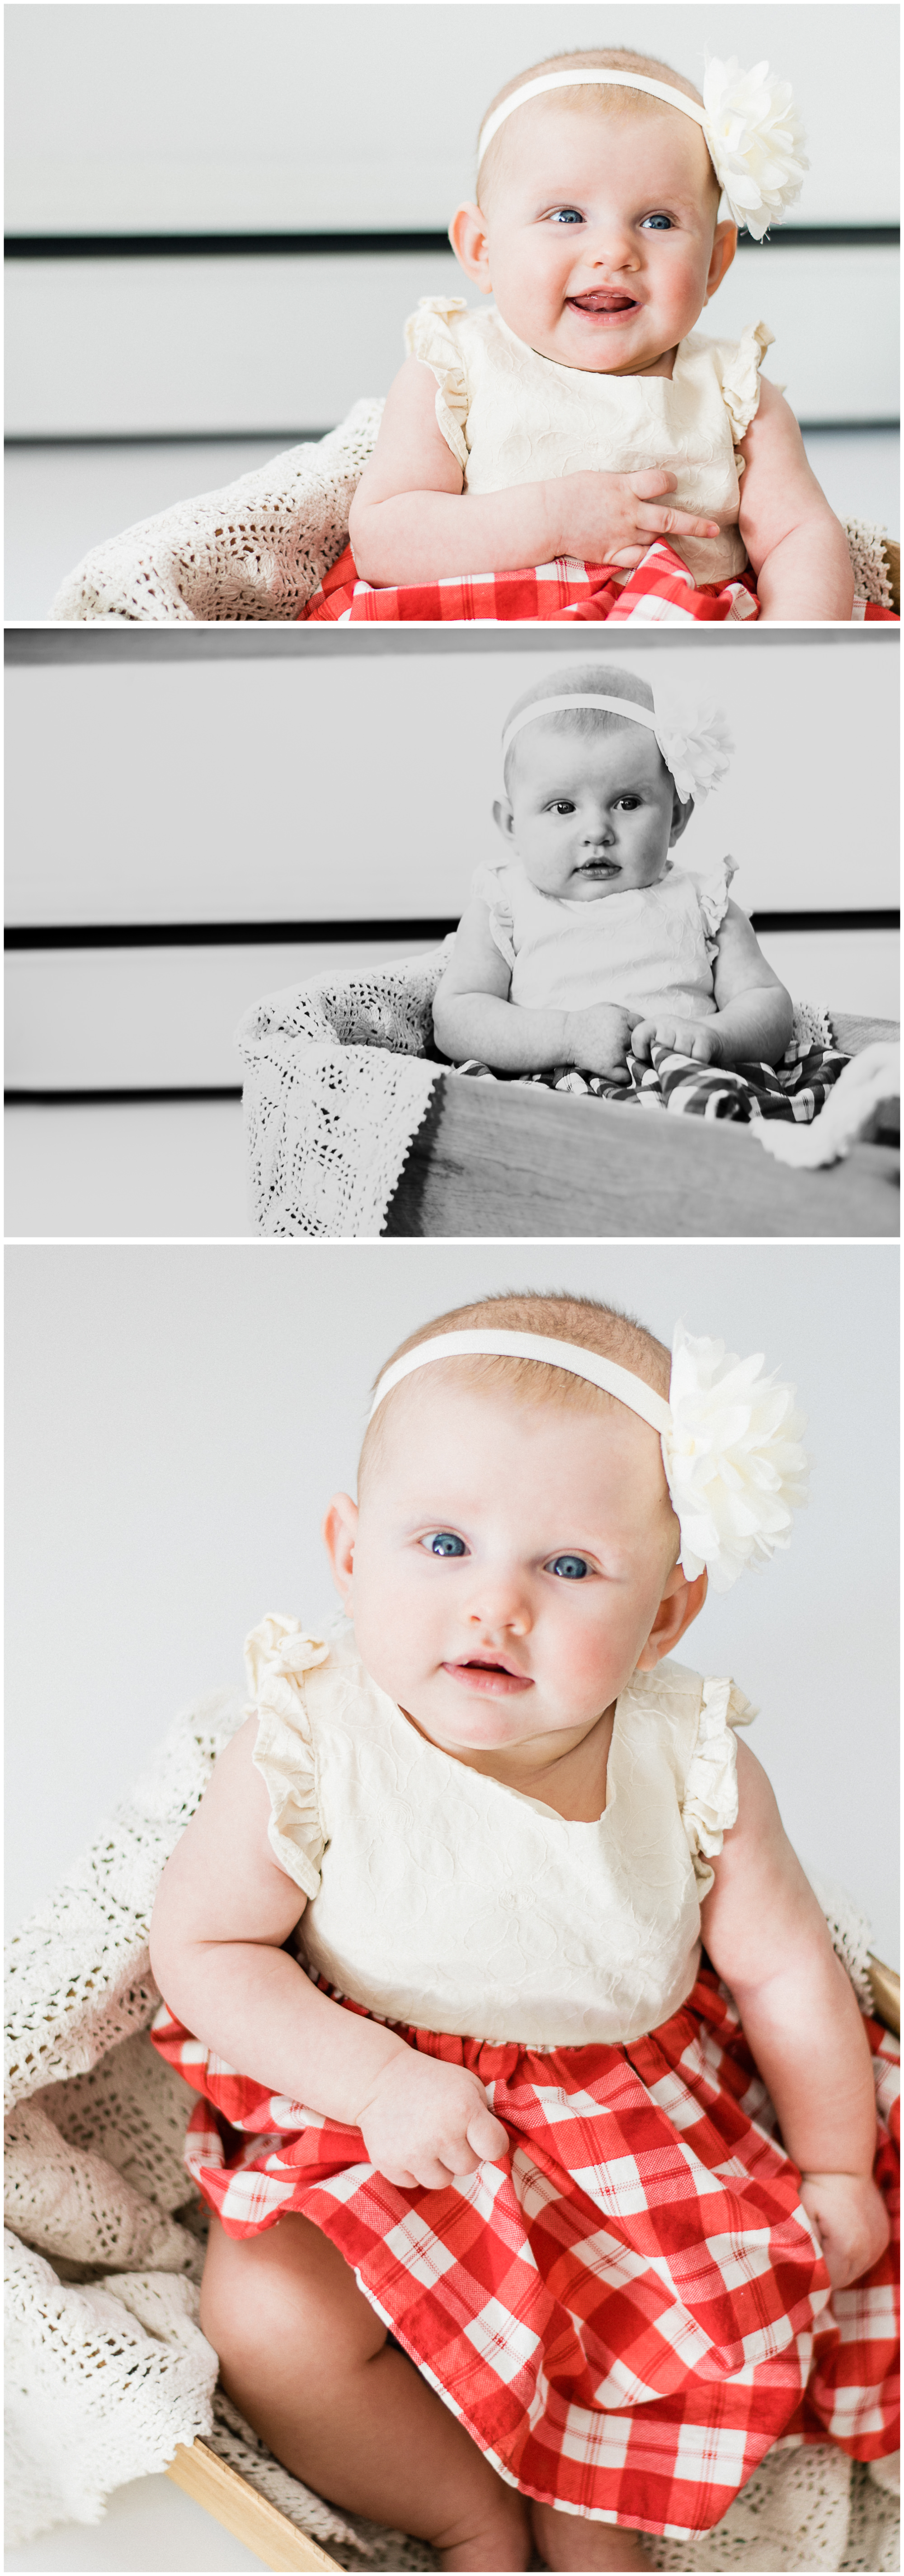 3 Month Gretta, First Year Session. Sagebrush Studio Photography from Shelby, Montana.